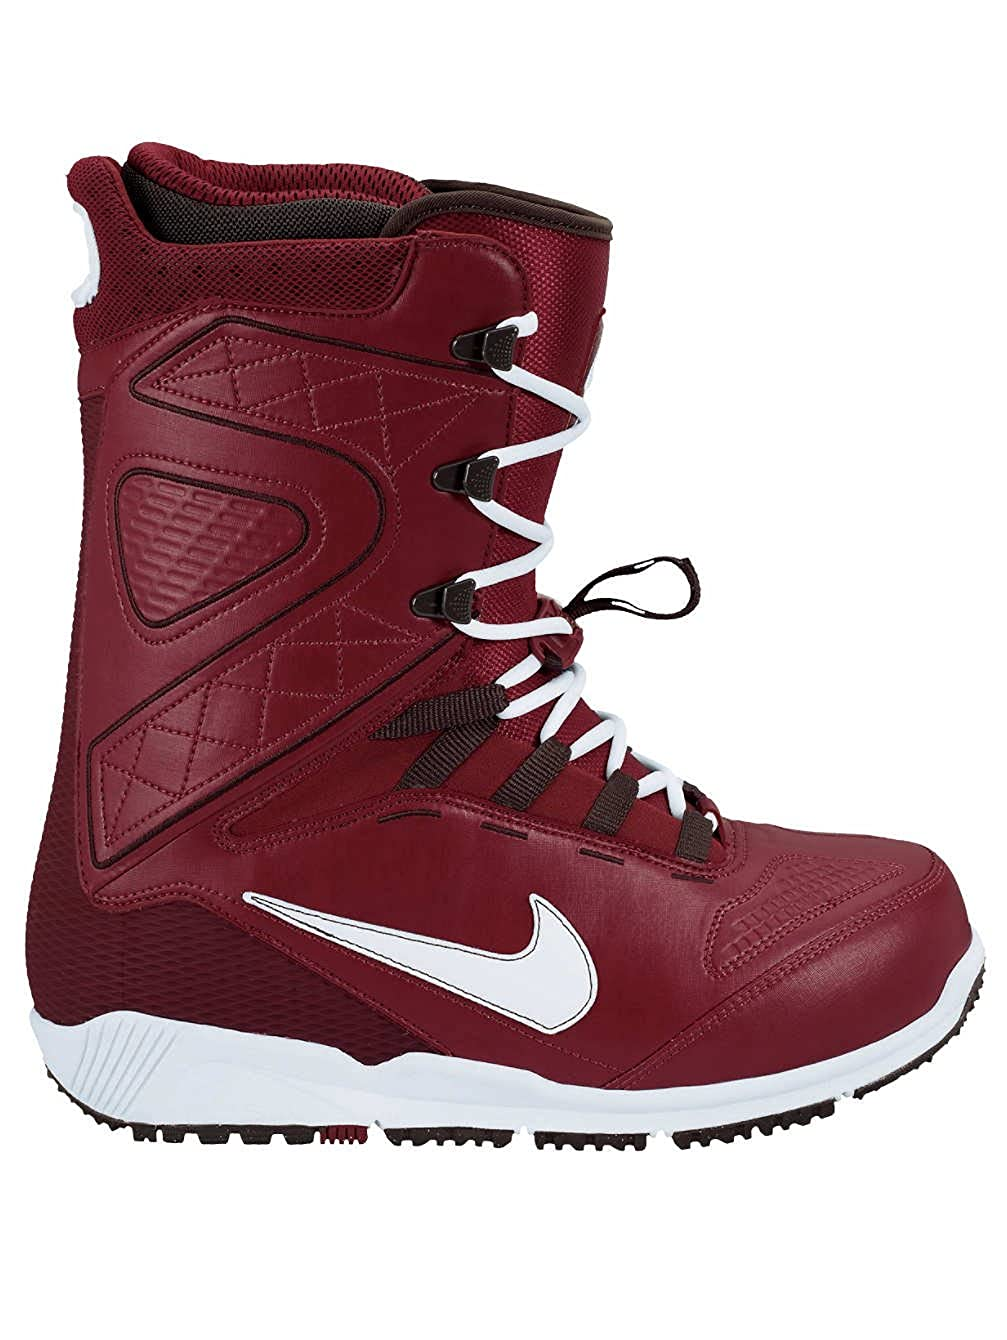 dccc738de935e Amazon.com: NIKE Zoom Kaiju Snowboard Boots Team Red/White/Deep ...